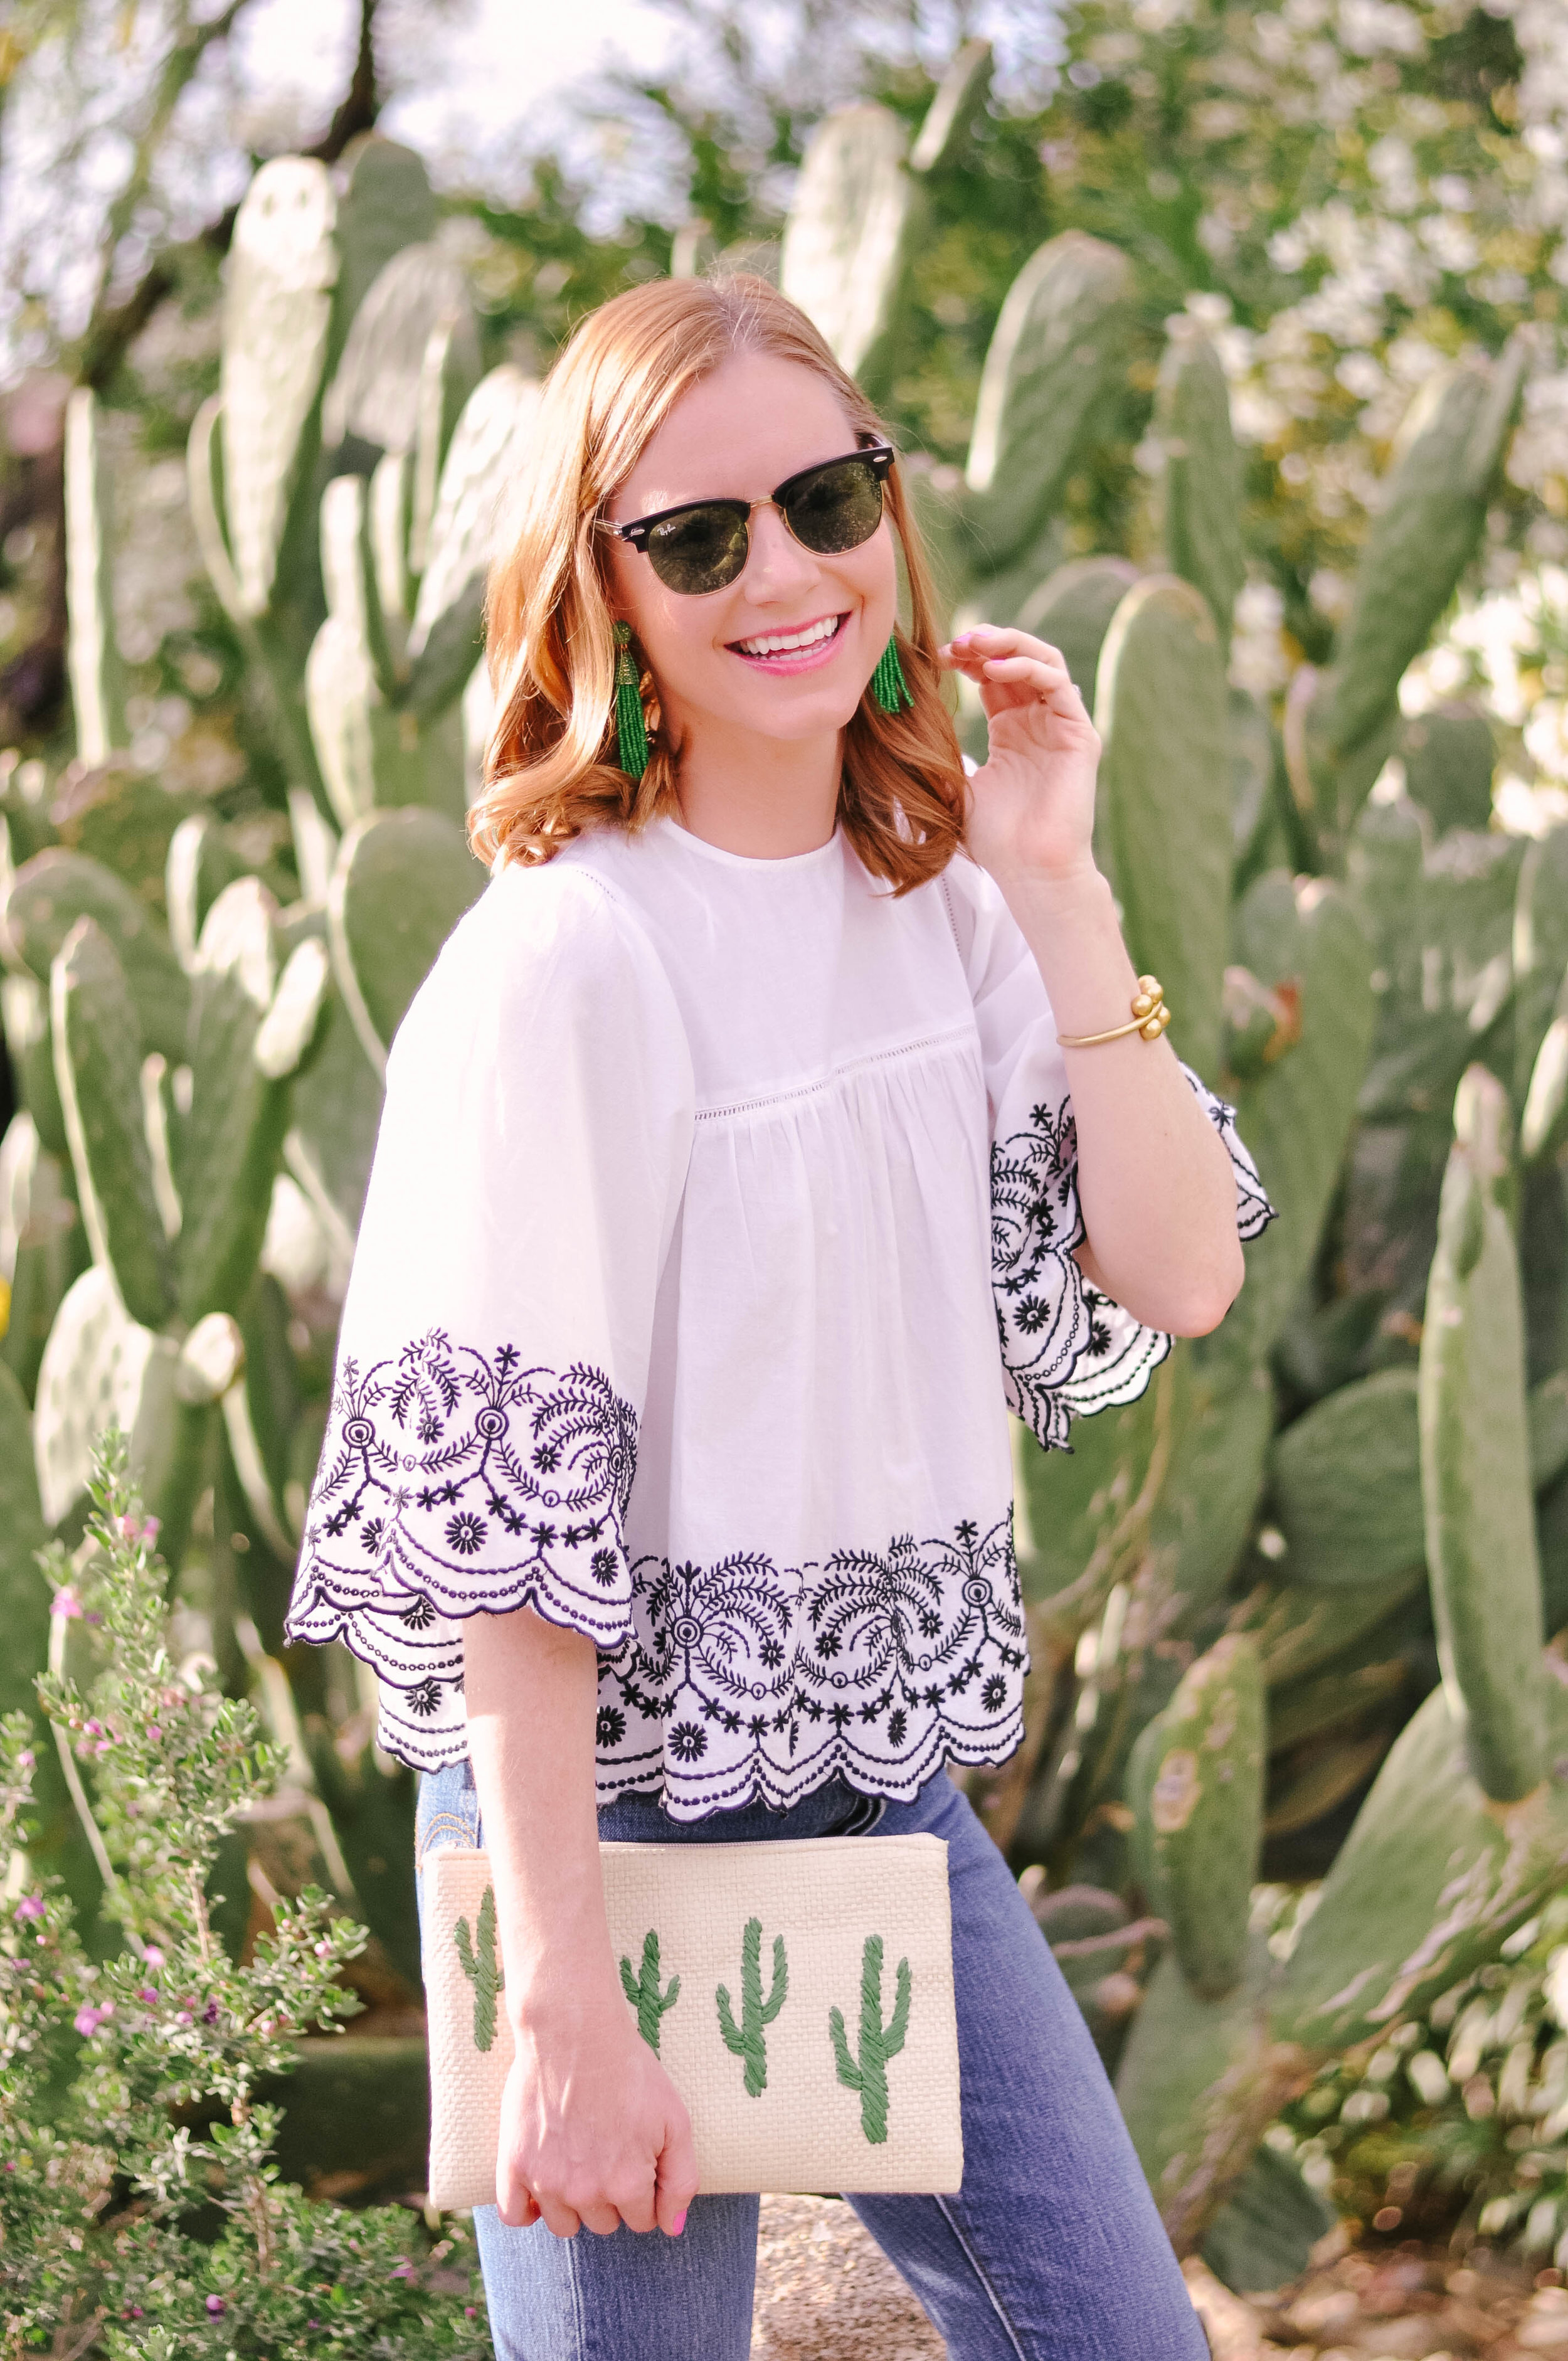 Woman in sunglasses next to cactus